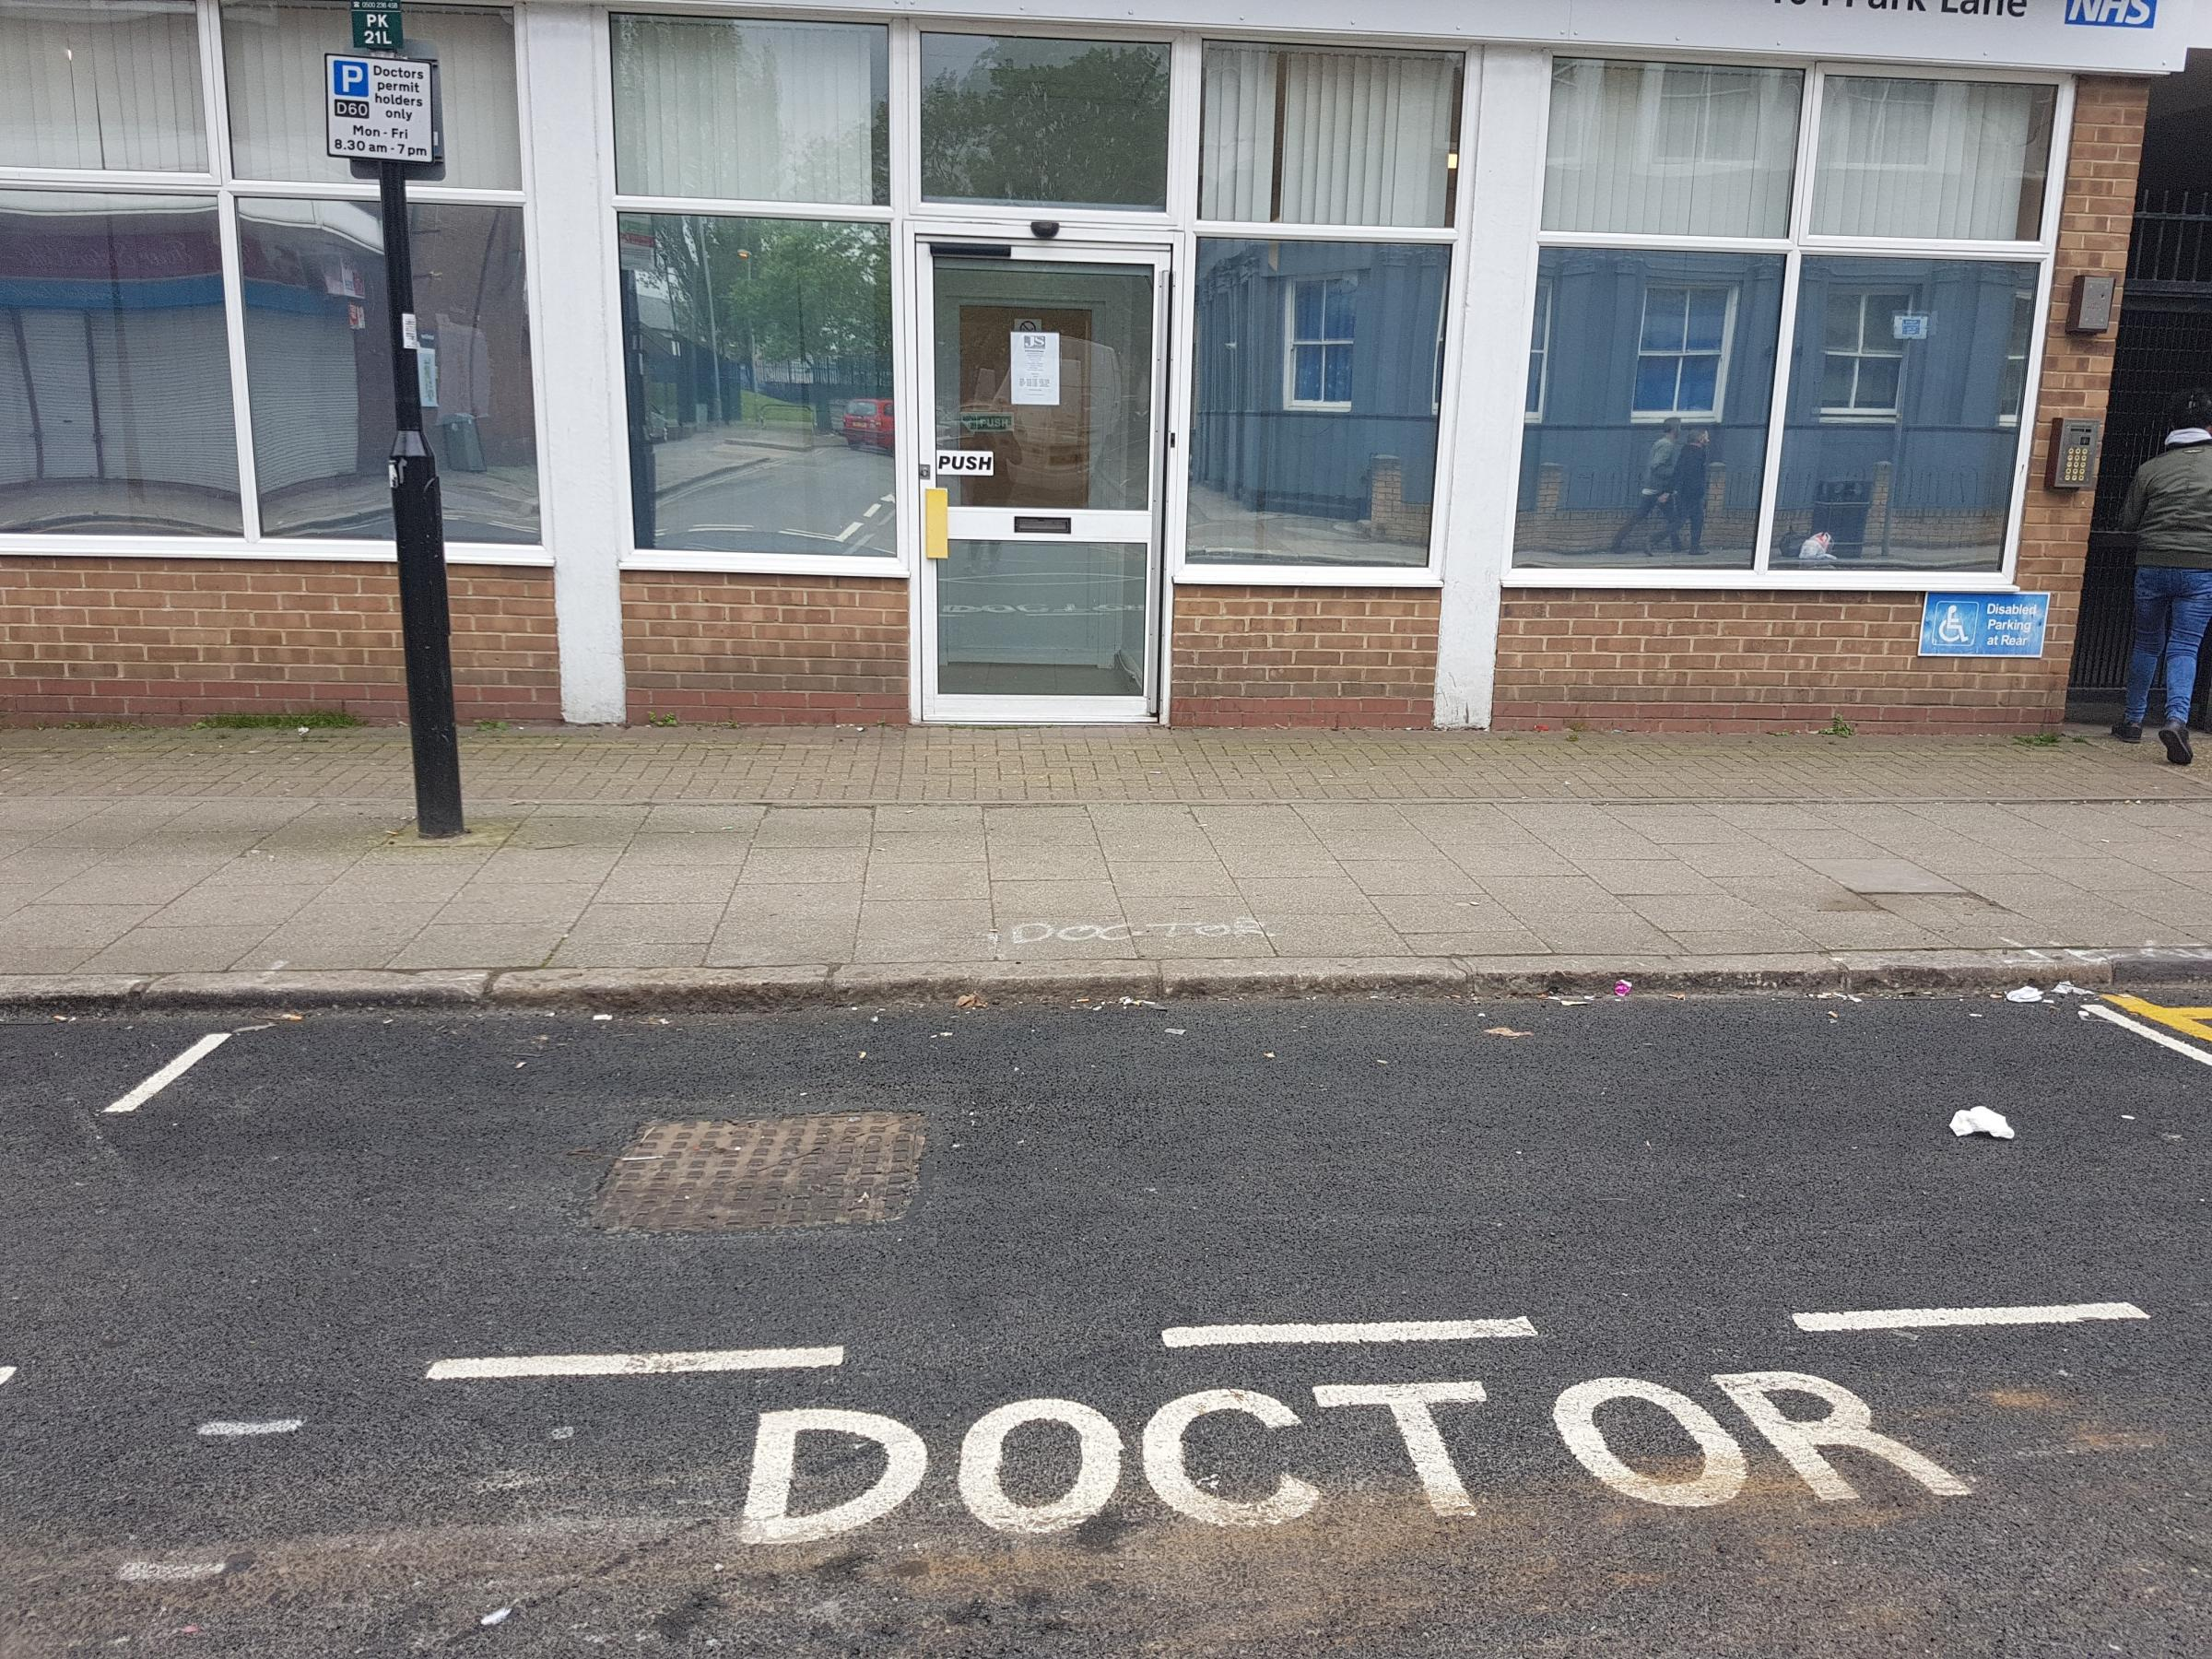 The doctors' bay on Park Lane